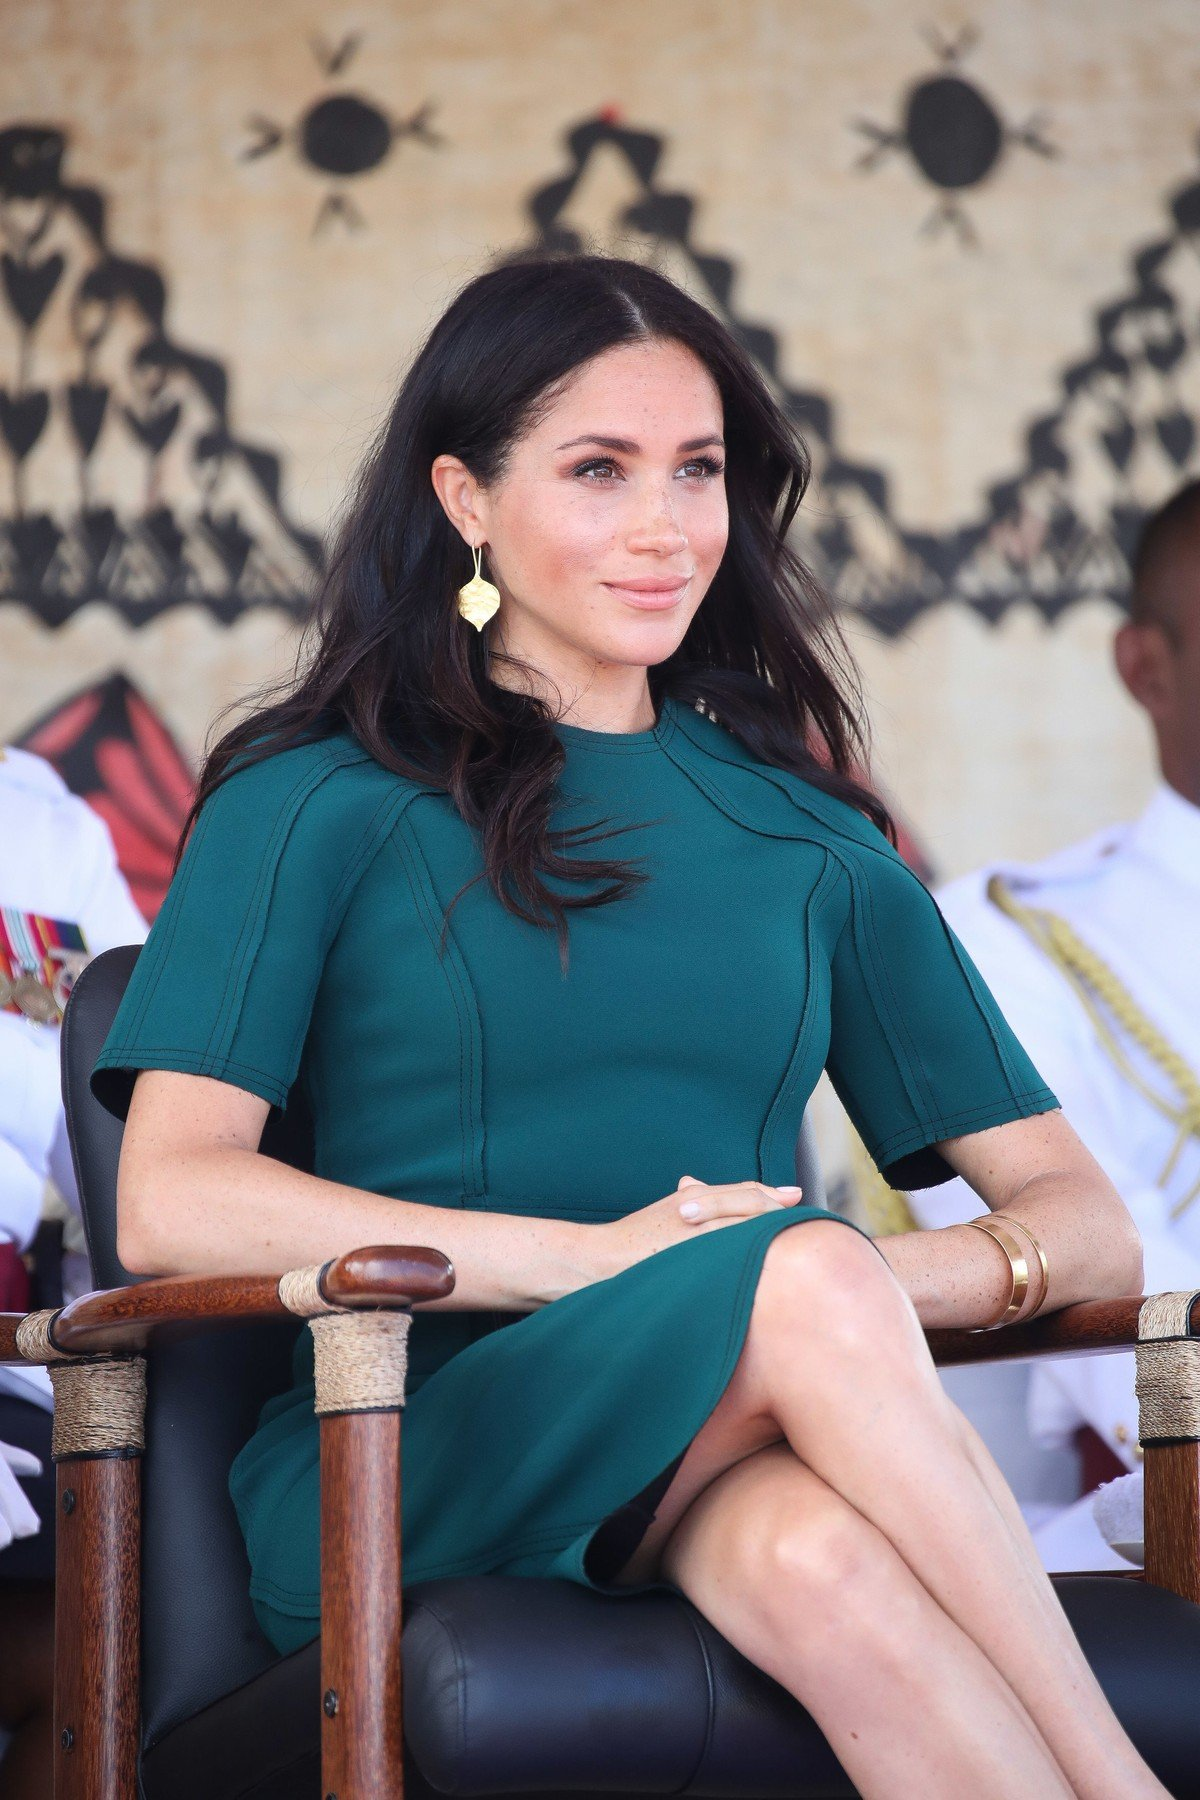 The Duchess of Sussex attends the unveiling of a statue in honour of Sergeant Talaiasi Labalaba in Nadi, western Fiji, on the third day of the royal couple's visit to the country., Image: 392560429, License: Rights-managed, Restrictions: , Model Release: no, Credit line: Profimedia, Press Association